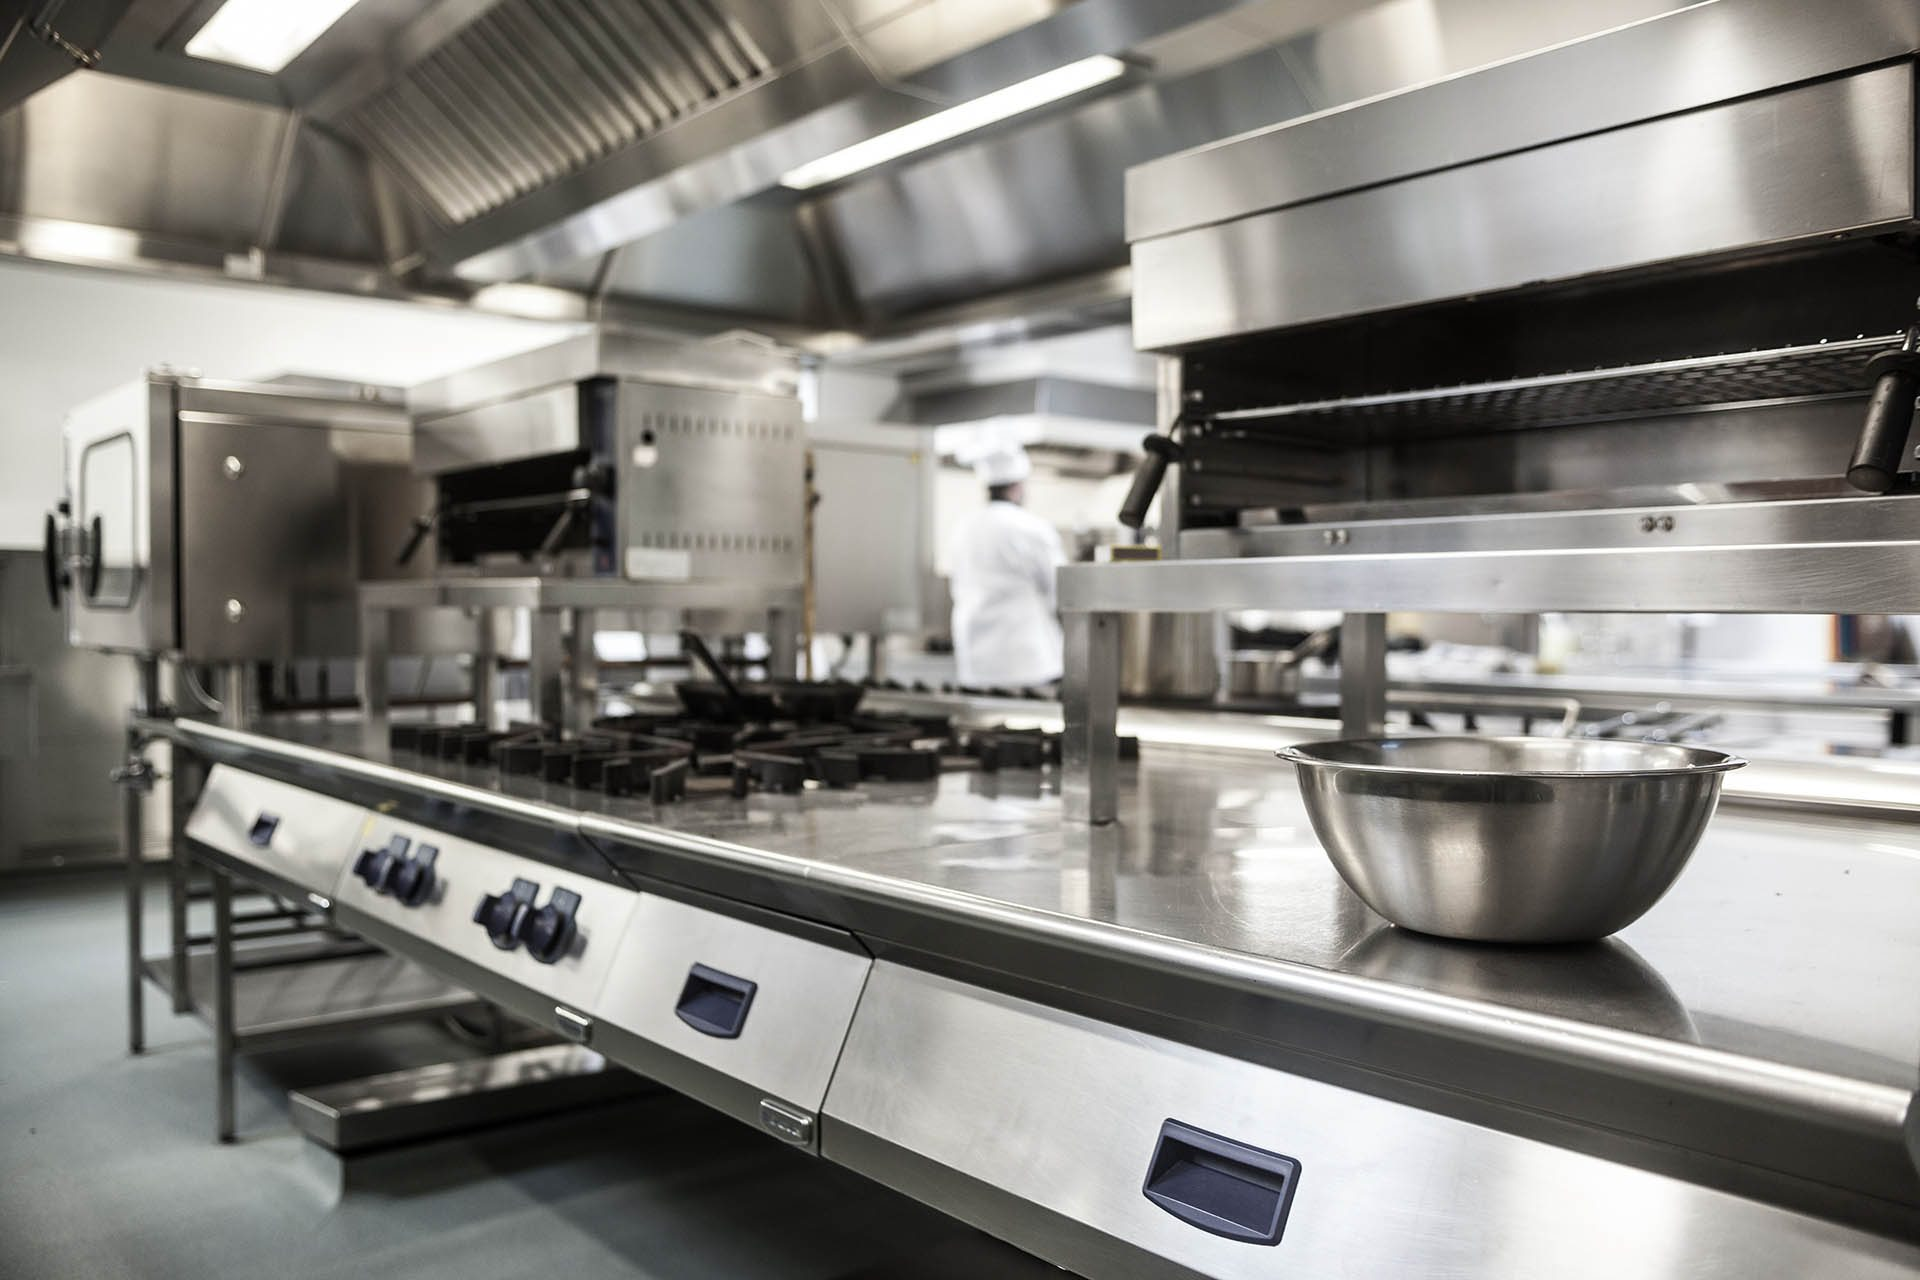 professional kitchen appliances hanging lighting fixtures for restaurant equipment repair oklahoma city okc work surface and in